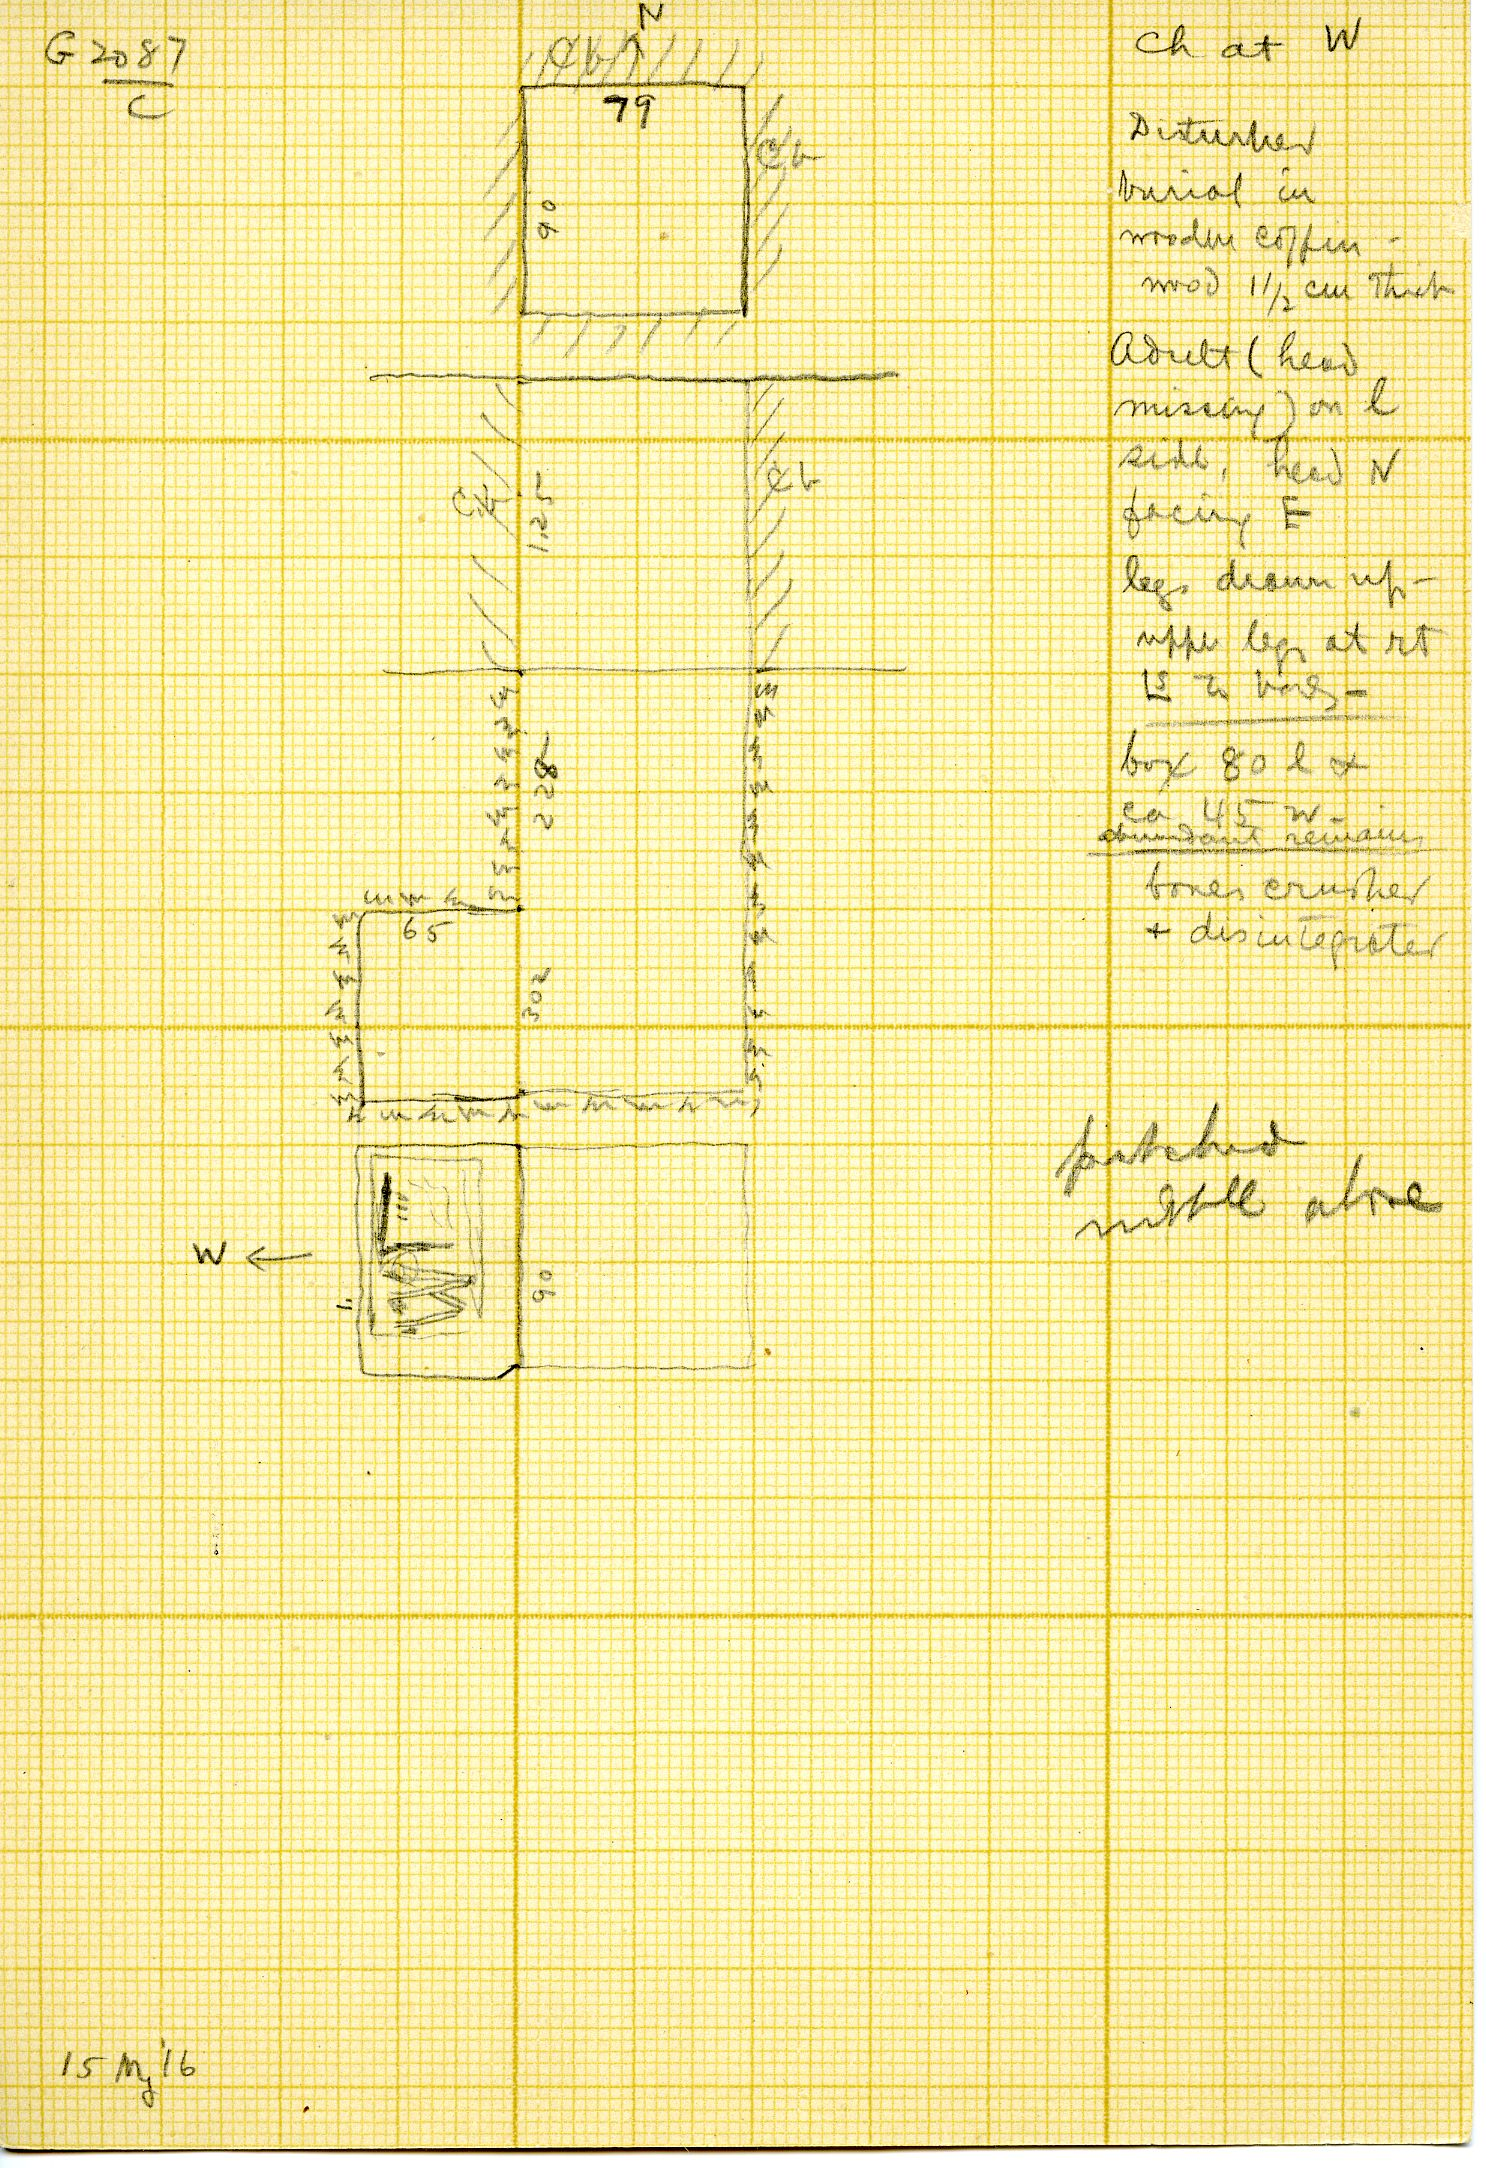 Maps and plans: G 3087, Shaft C